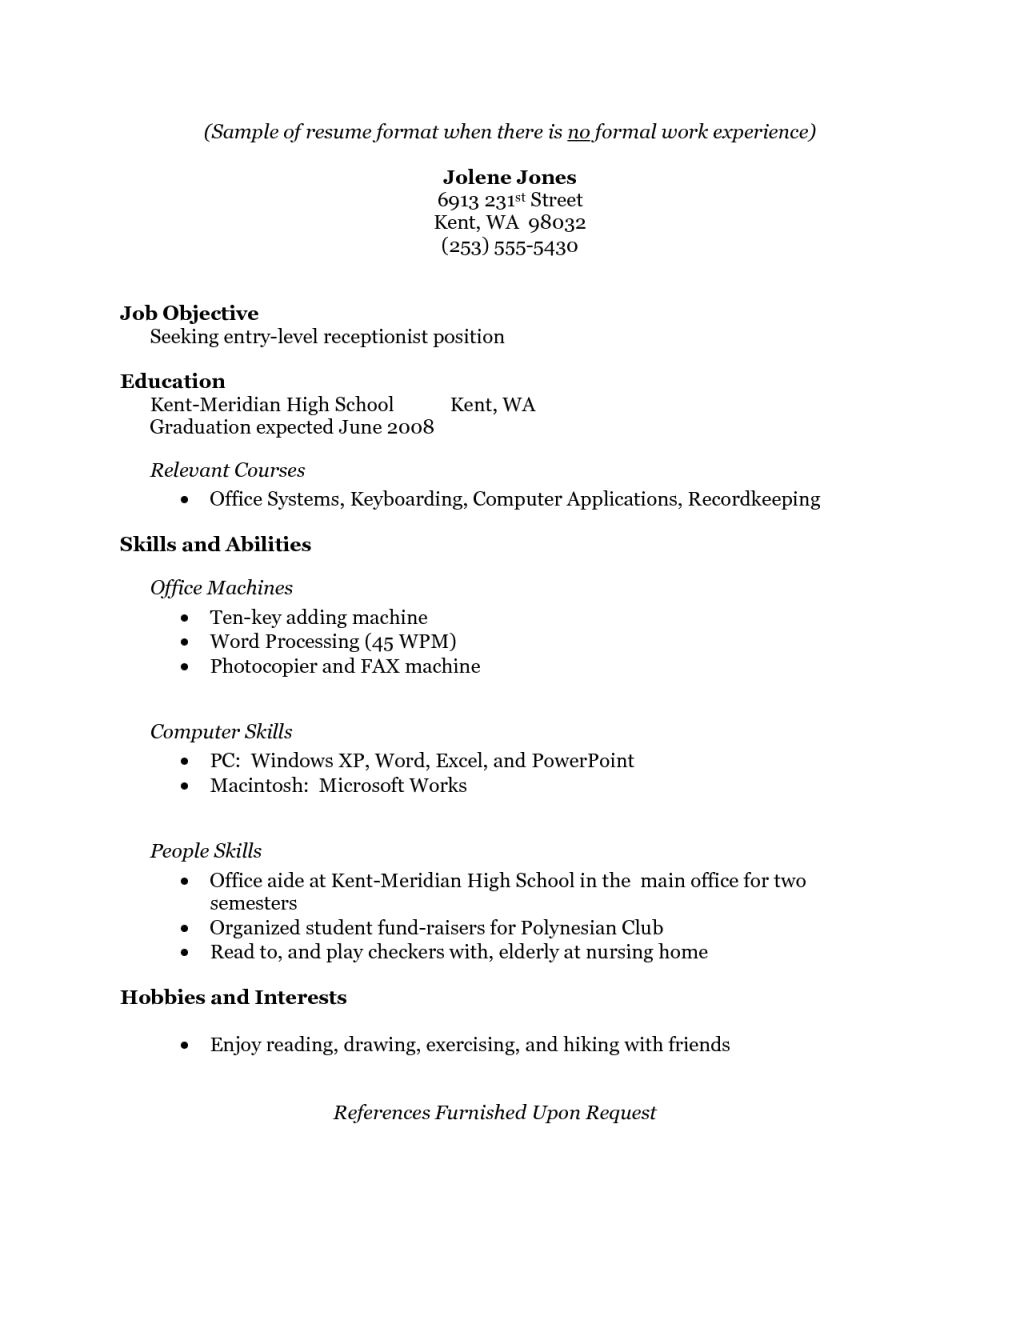 Sample Resume for A Highschool Student with No Experience Resume Examples for Highschool Students No Work Experience